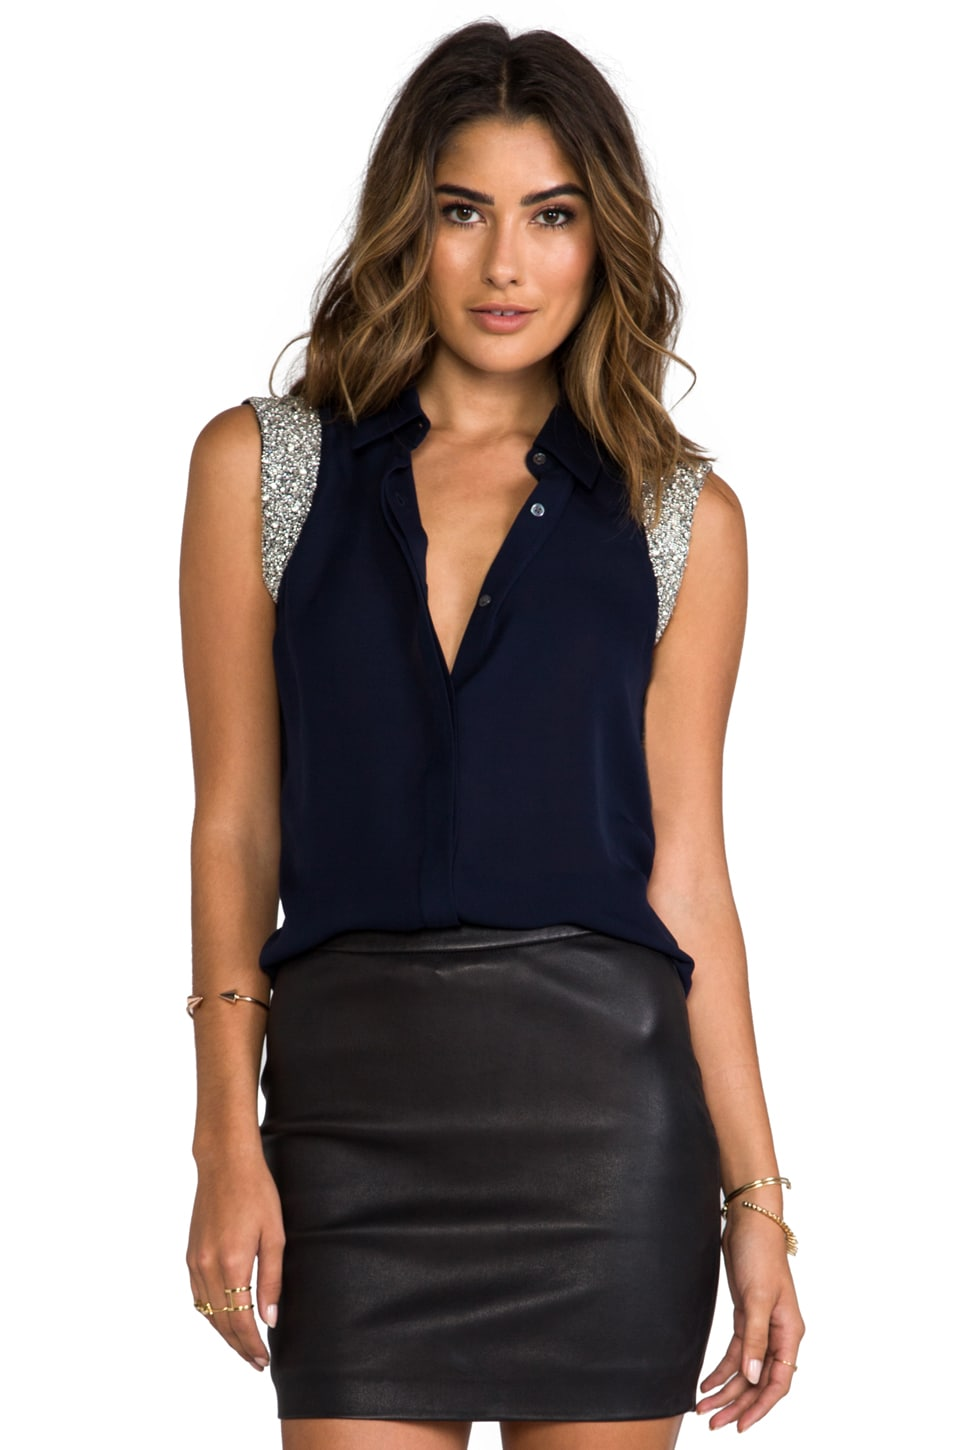 Haute Hippie Collared Blouse with Embellished Cap Sleeves in Midnight